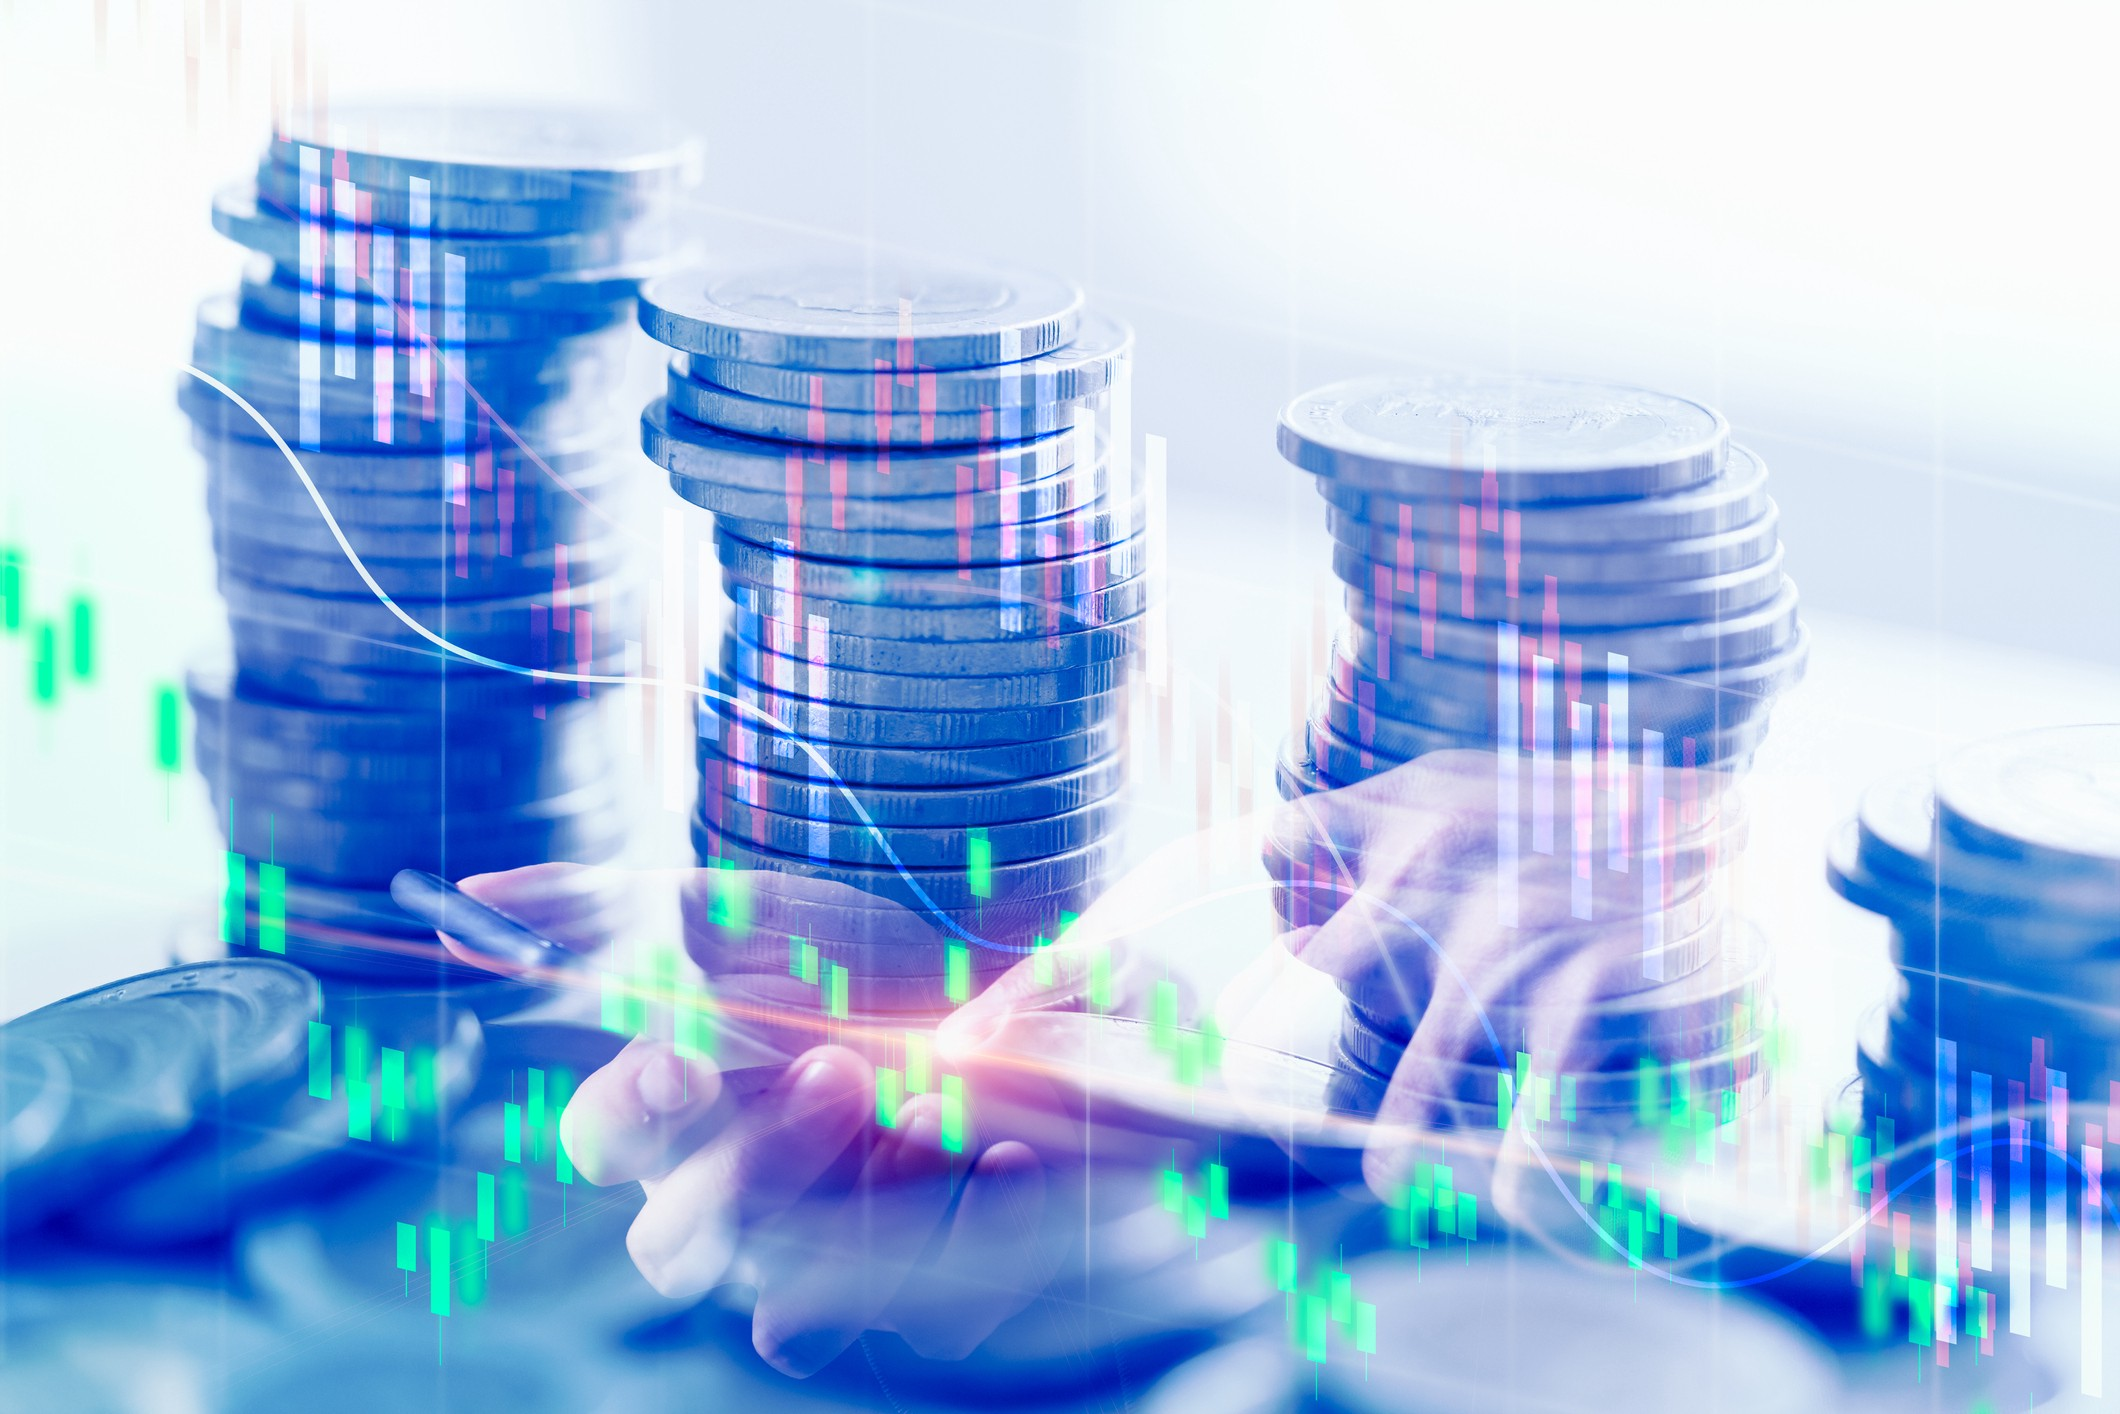 A double exposed image with a stock market concept, showing stacks of coins, hands tapping a smartphone, and a trading graph.